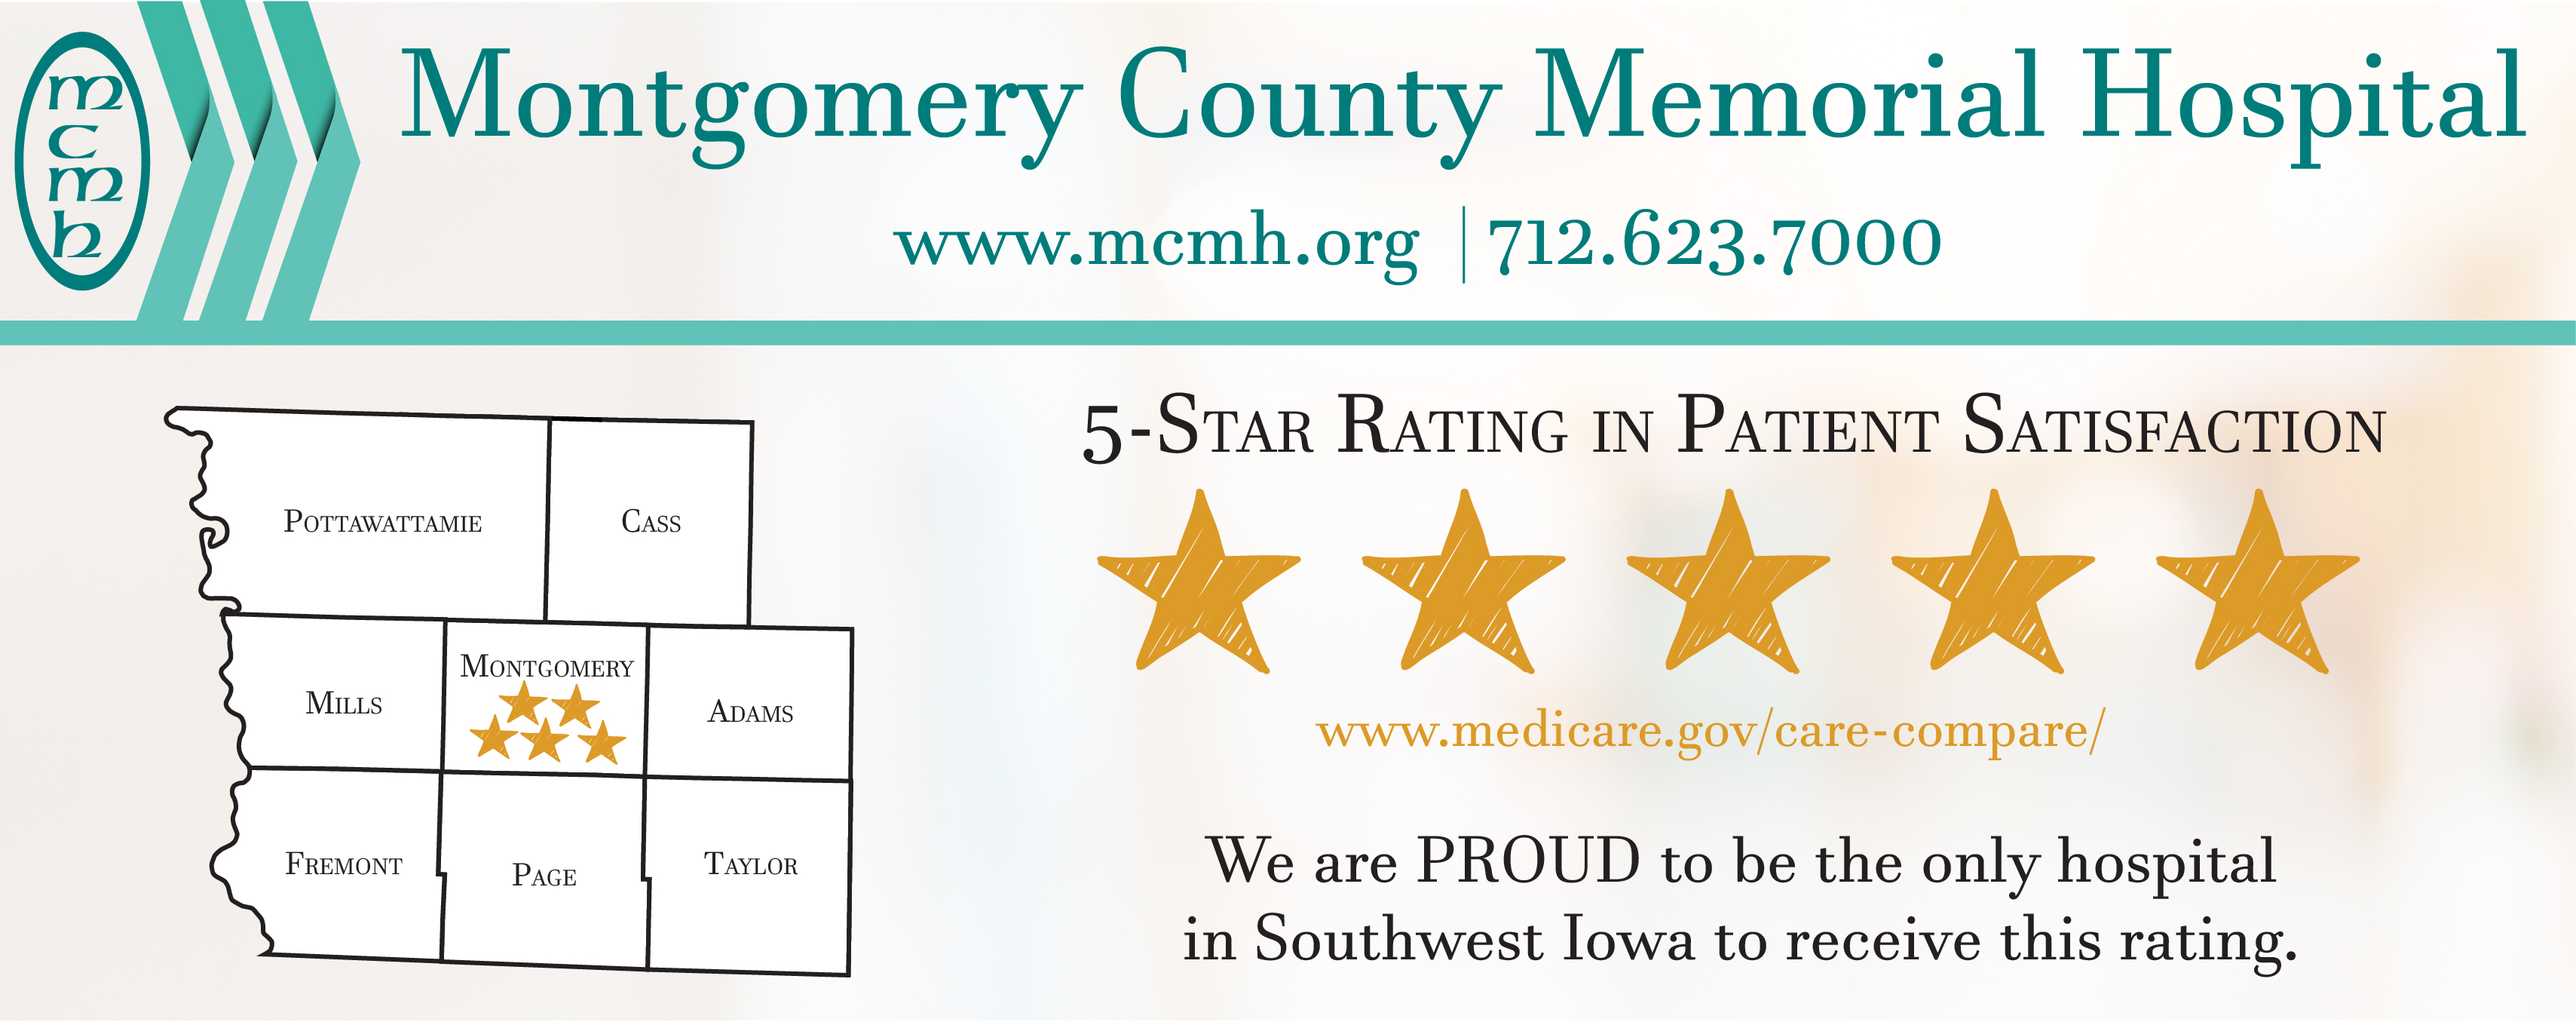 MCMH earns 5-Star Rating for Patient Satisfaction from CMS (Medicare)!